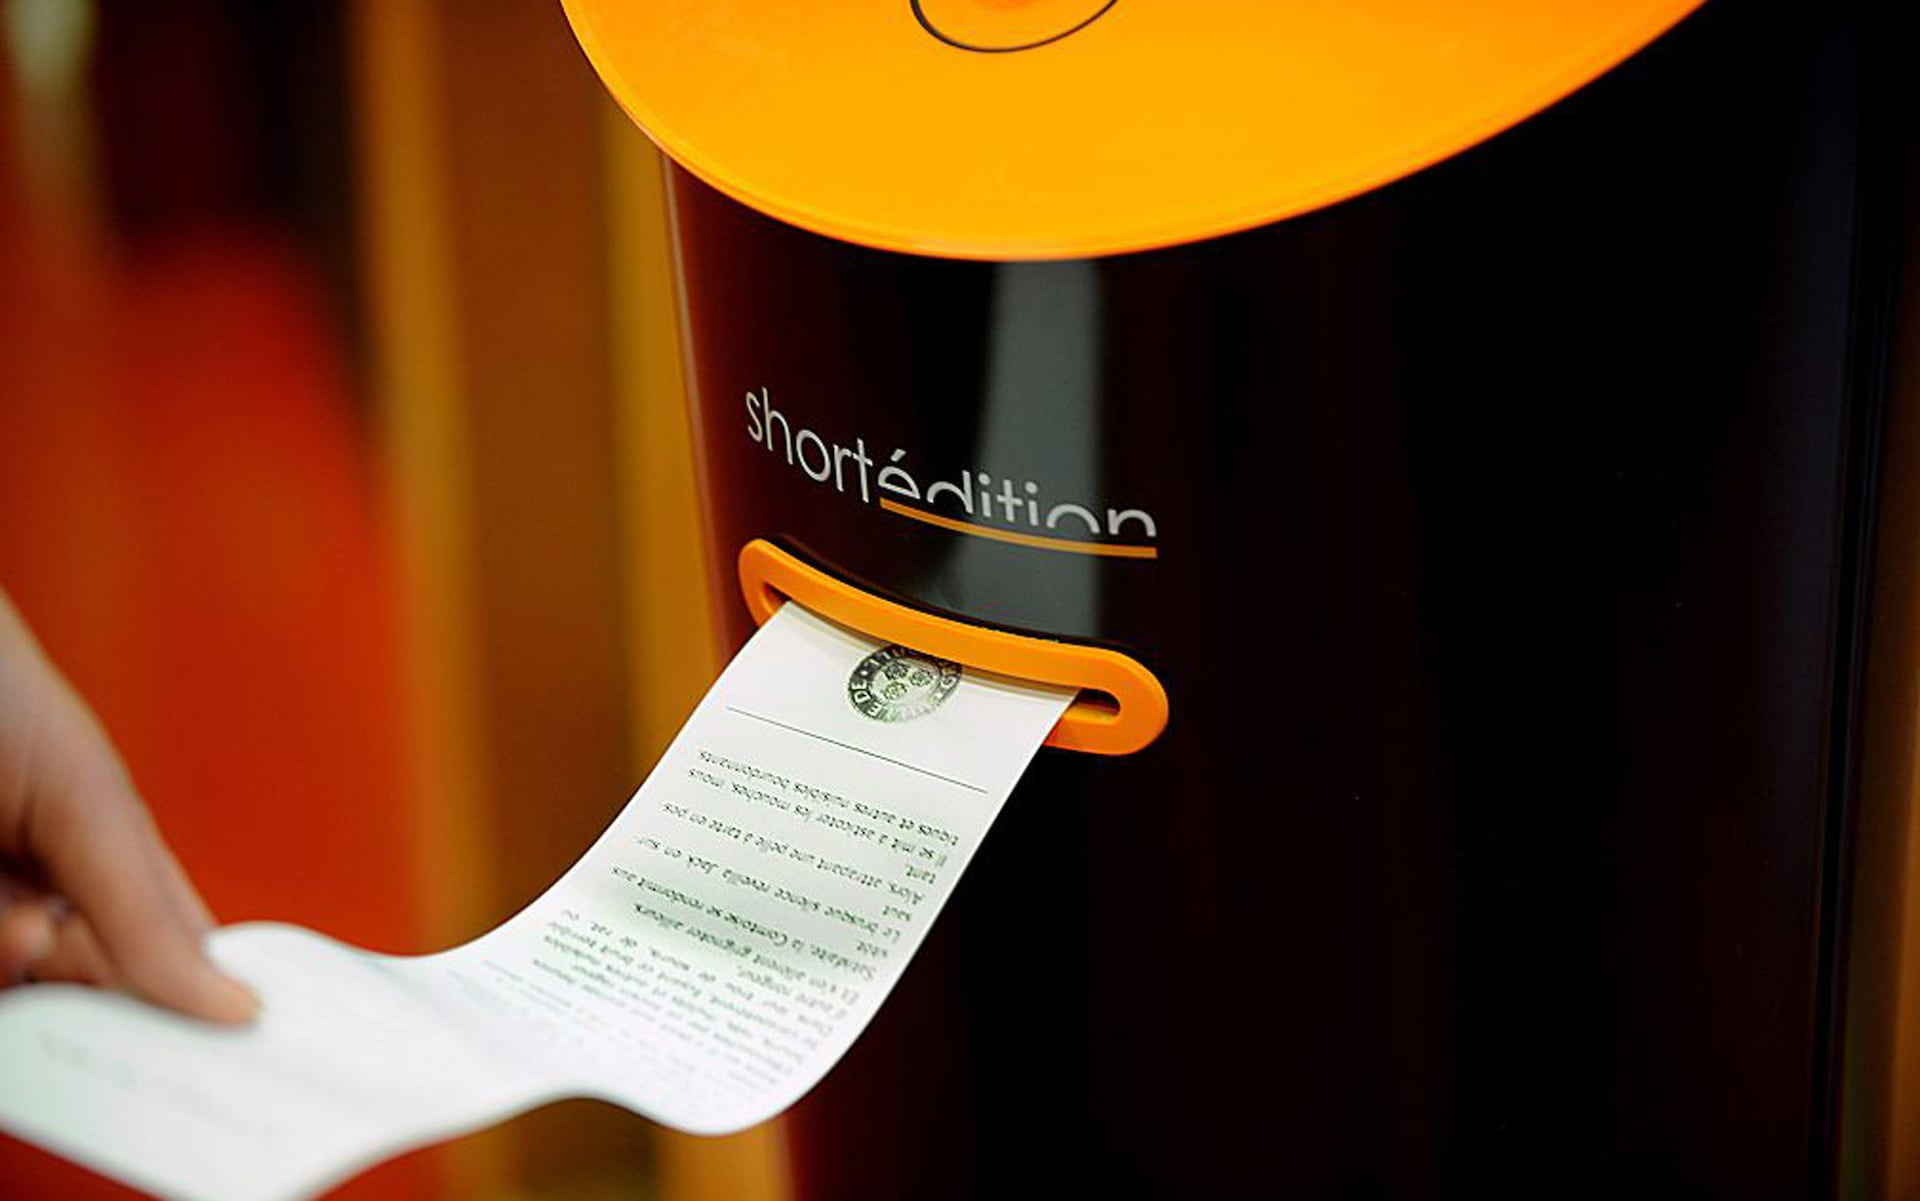 Image of [ UK ] Vending machines dispense short stories to bored French commuters